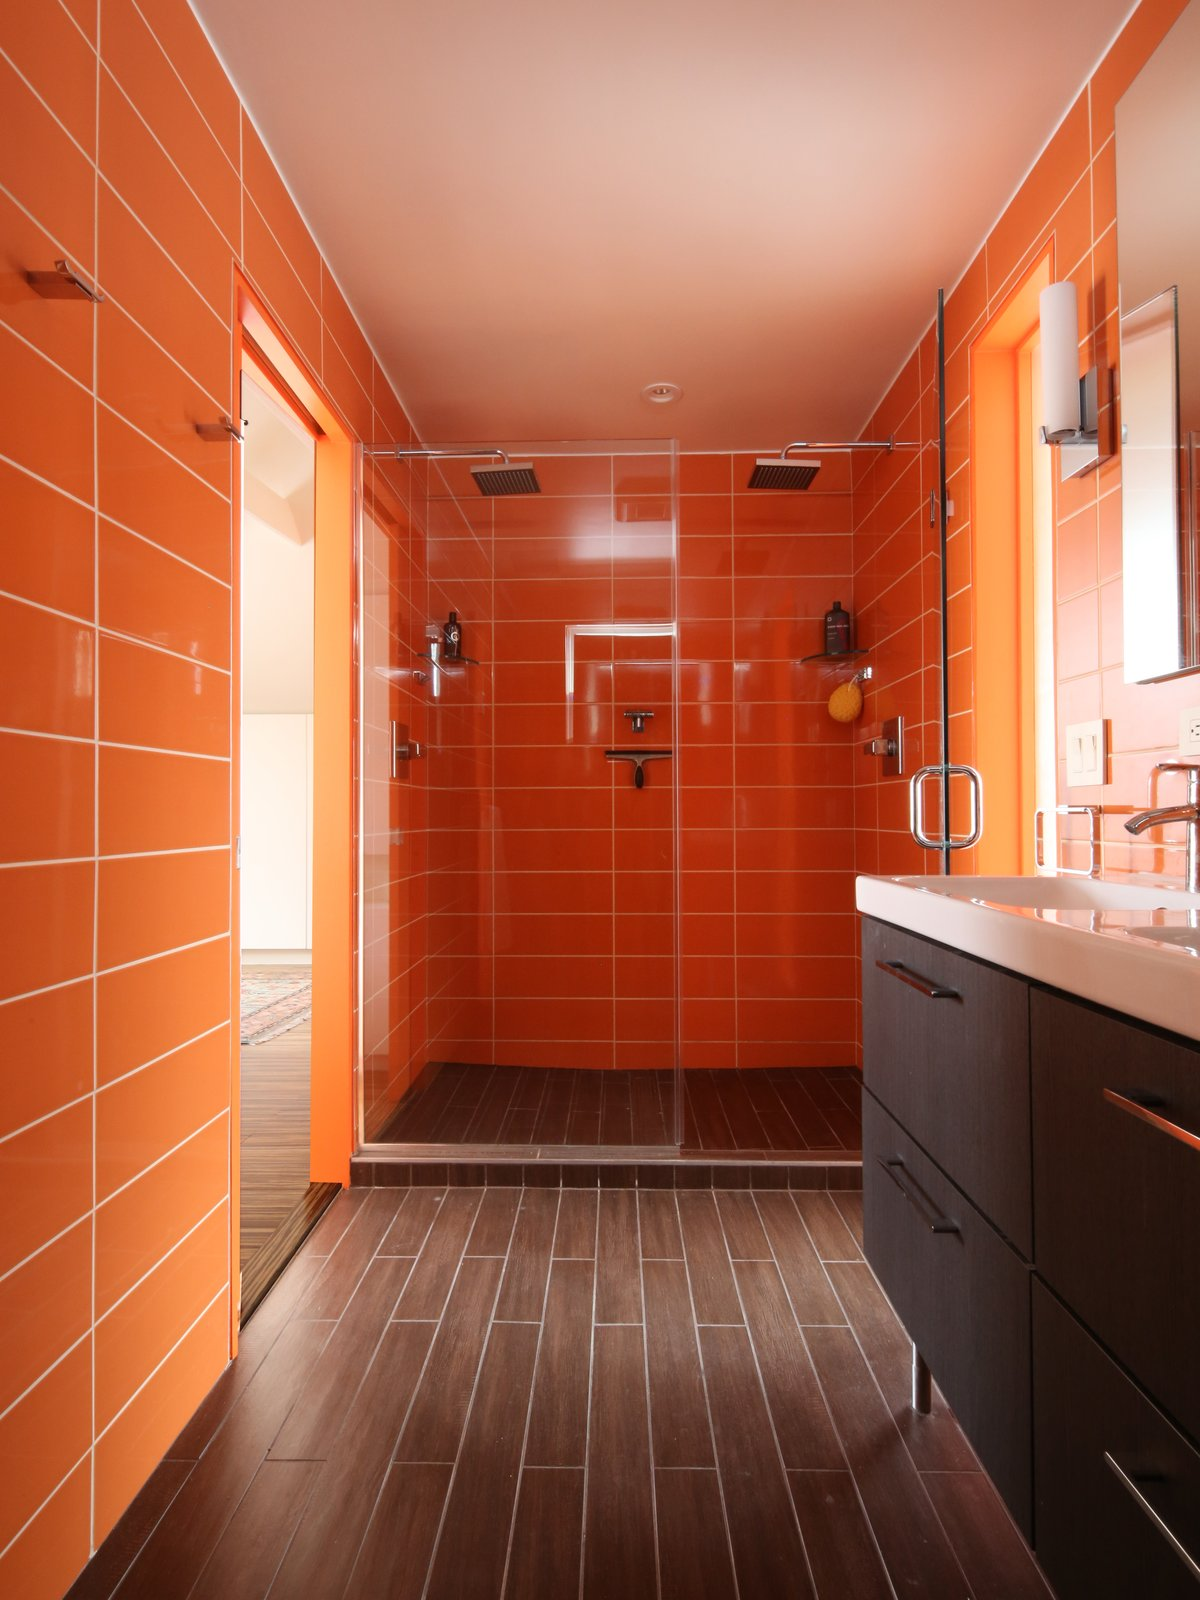 #bath #spa #bath&spa #modern #interior #interiordesign #color #shower #renovation #walltile #rainbowazul #citruscolor #clad #ceramicplank #ikea  Tagged: Bath Room, Ceramic Tile Wall, Full Shower, Ceramic Tile Floor, and Enclosed Shower.  Photo 4 of 22 in Bath & Spa Intrigue